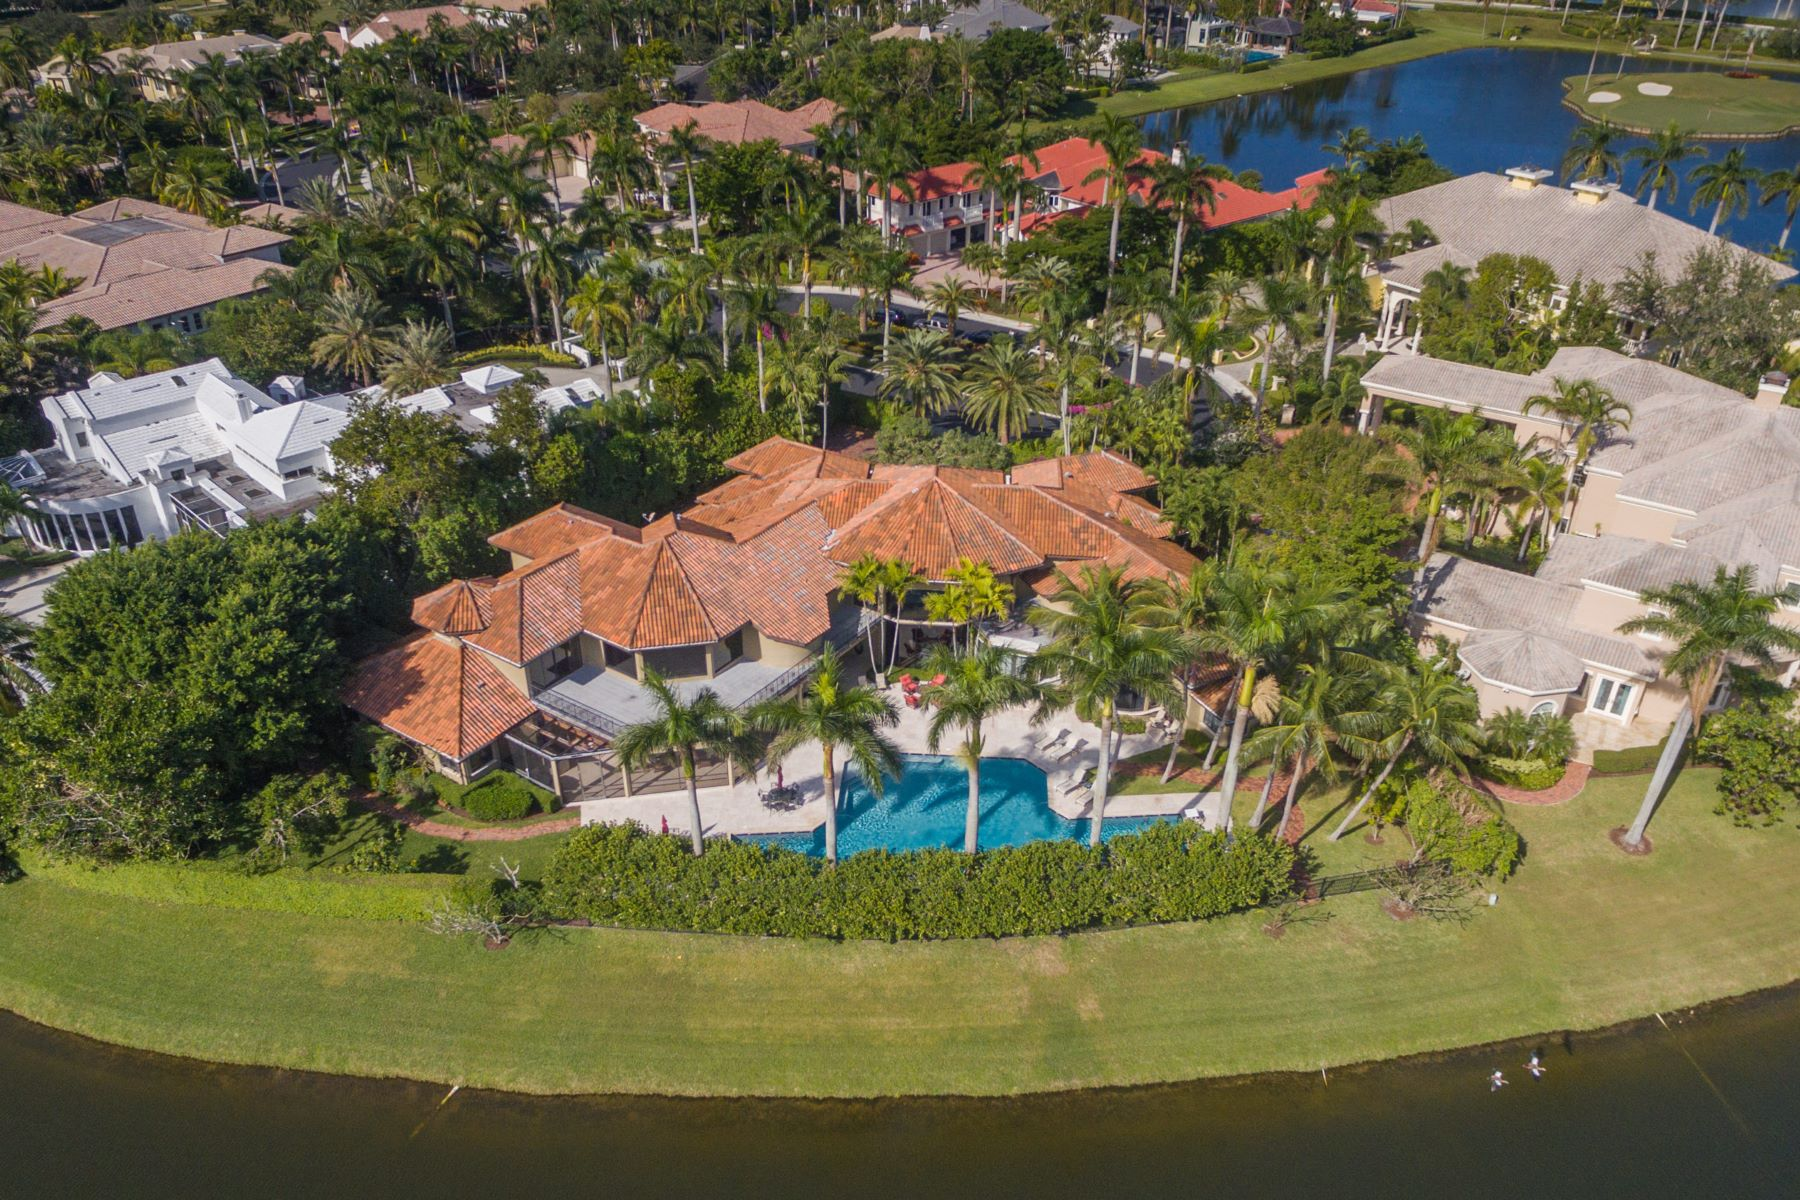 Single Family Home for Active at 3634 NW 52nd St , Boca Raton, FL 33496 3634 NW 52nd St Boca Raton, Florida 33496 United States